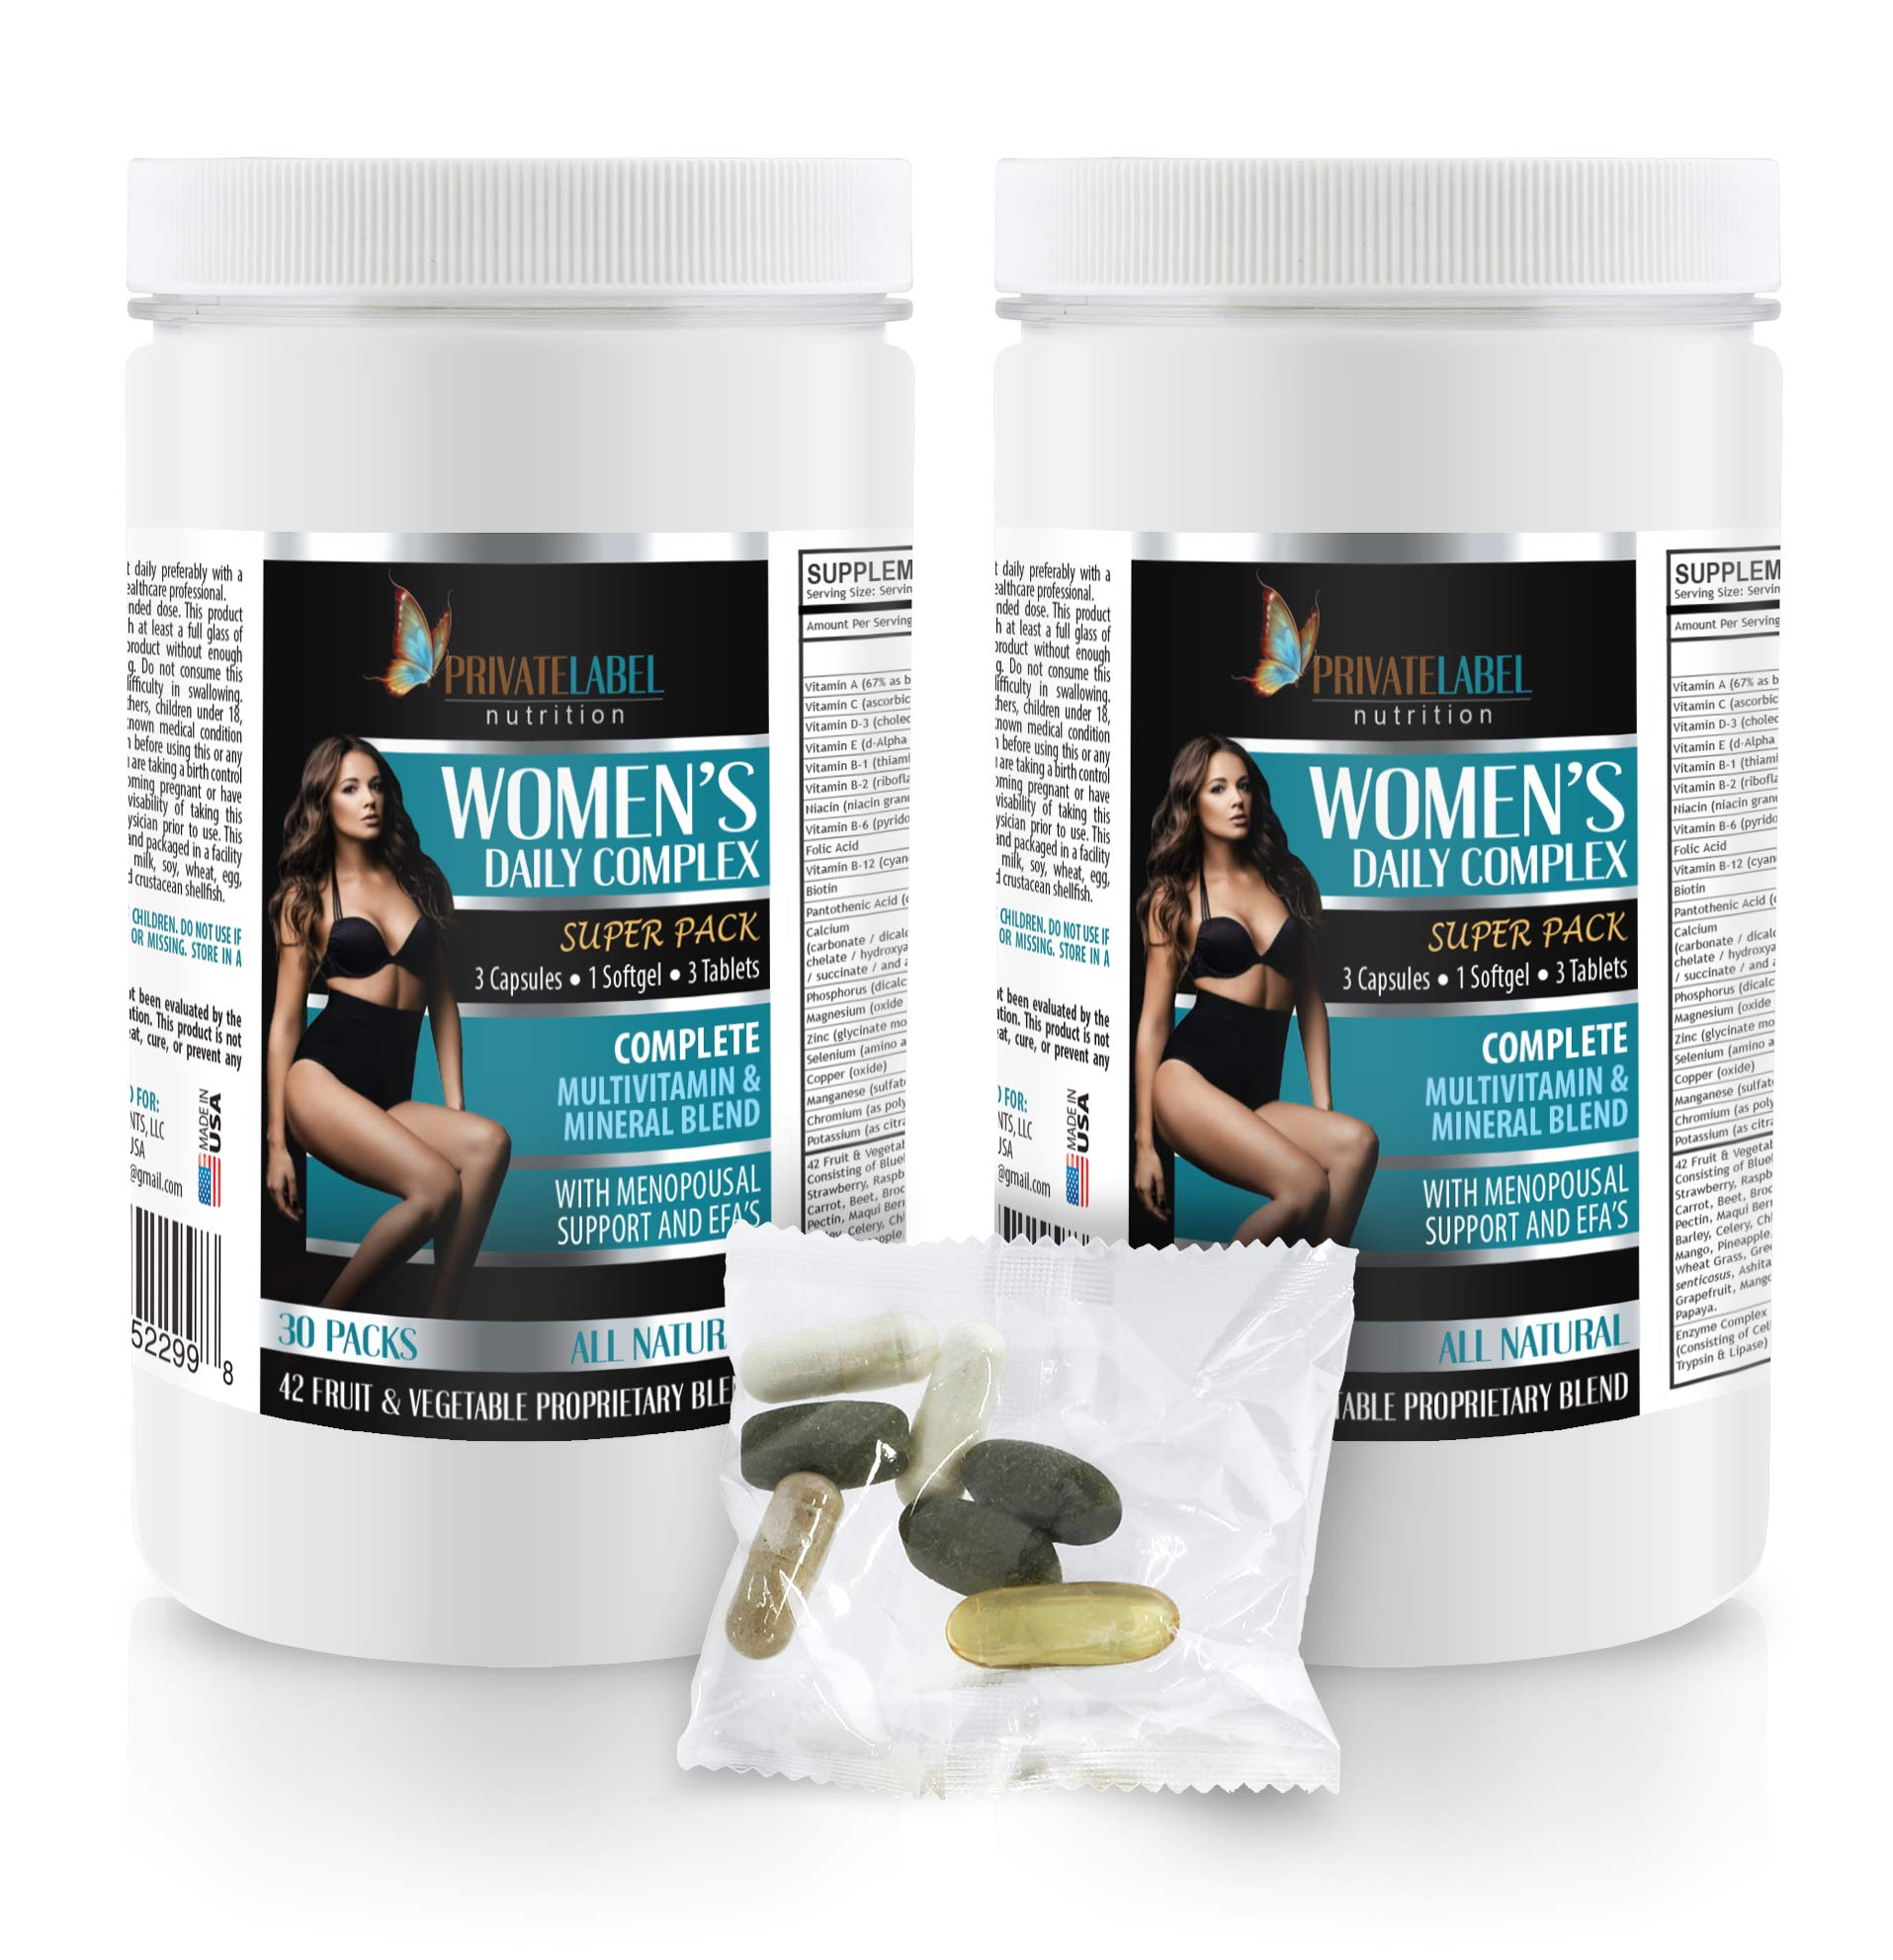 Female Energy Supplement - Women's Daily Complex - Super Pack - folic Acid and zinc for Women - 2 Cans 60 Packs (420 Pills) by PRIVATE LABEL LLC (Image #1)